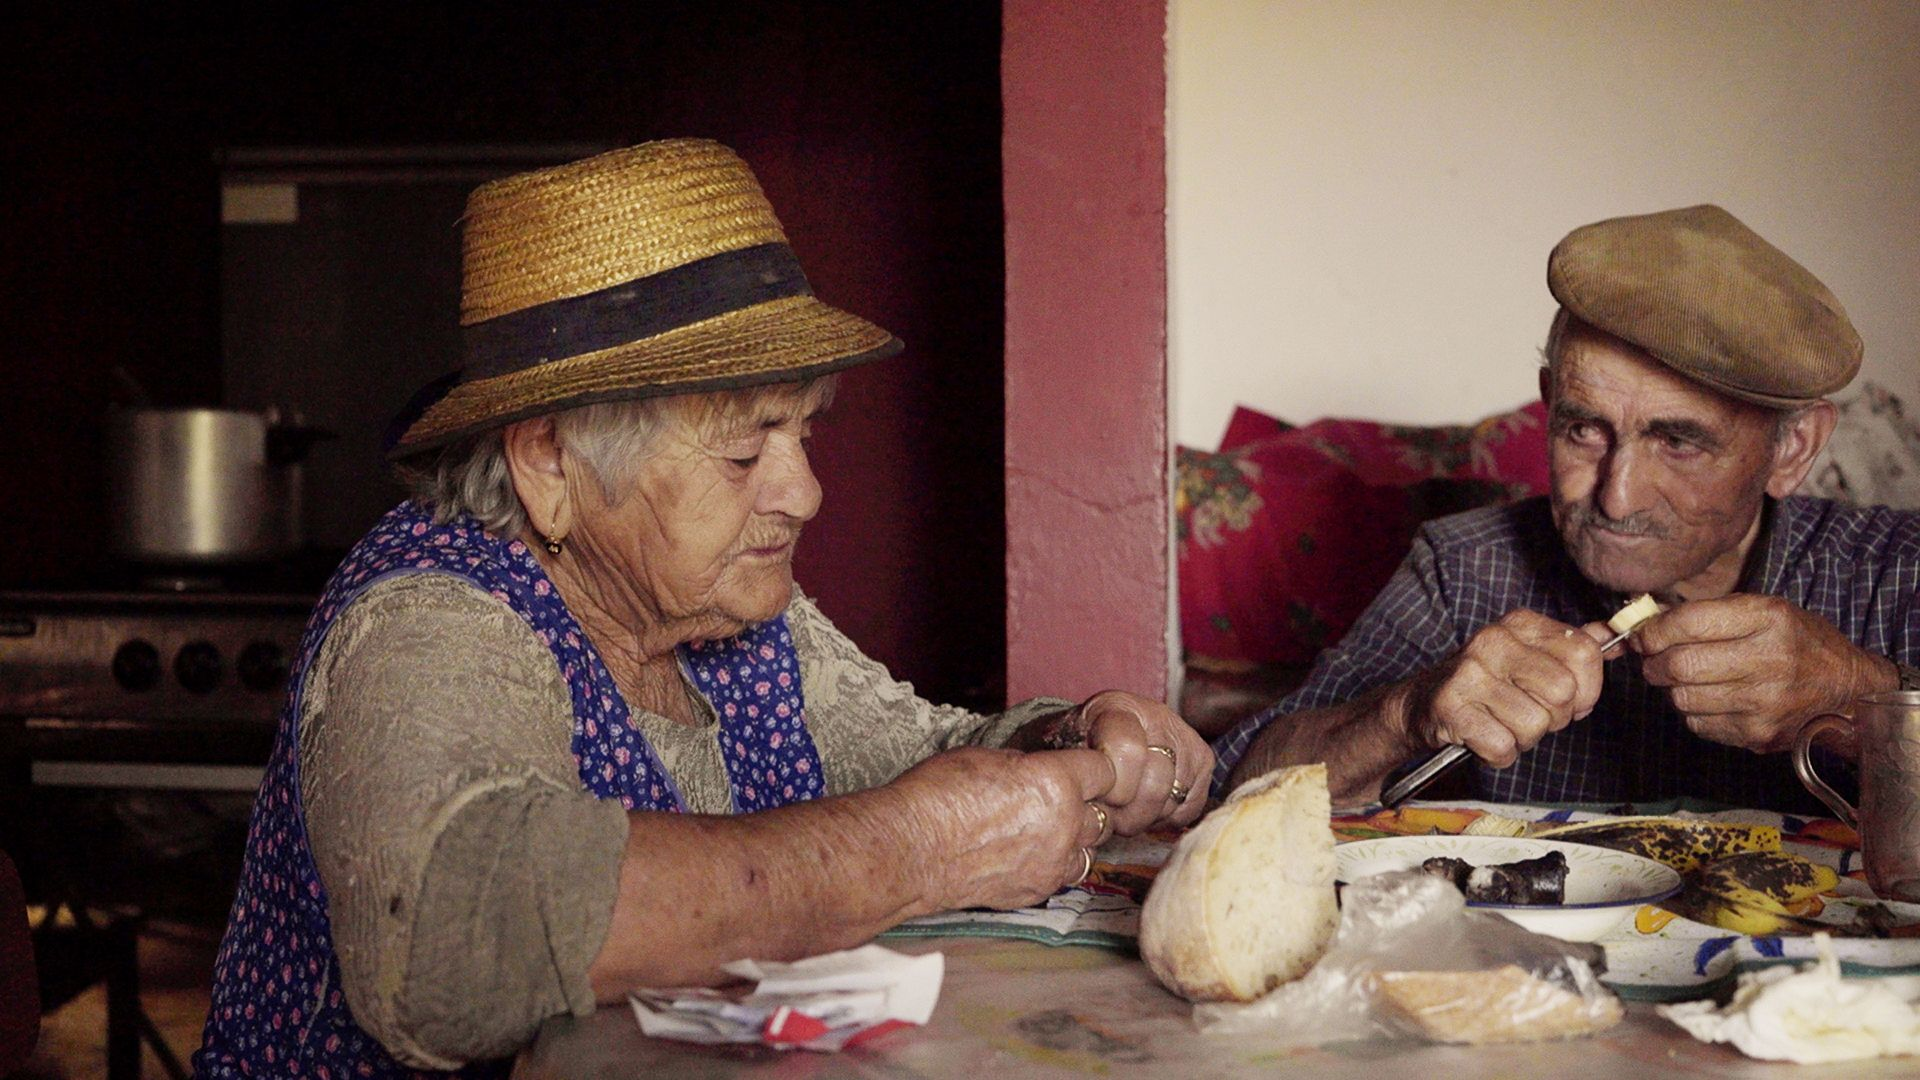 Inacio and an old woman, her neighbor, in a house in his portuguese village